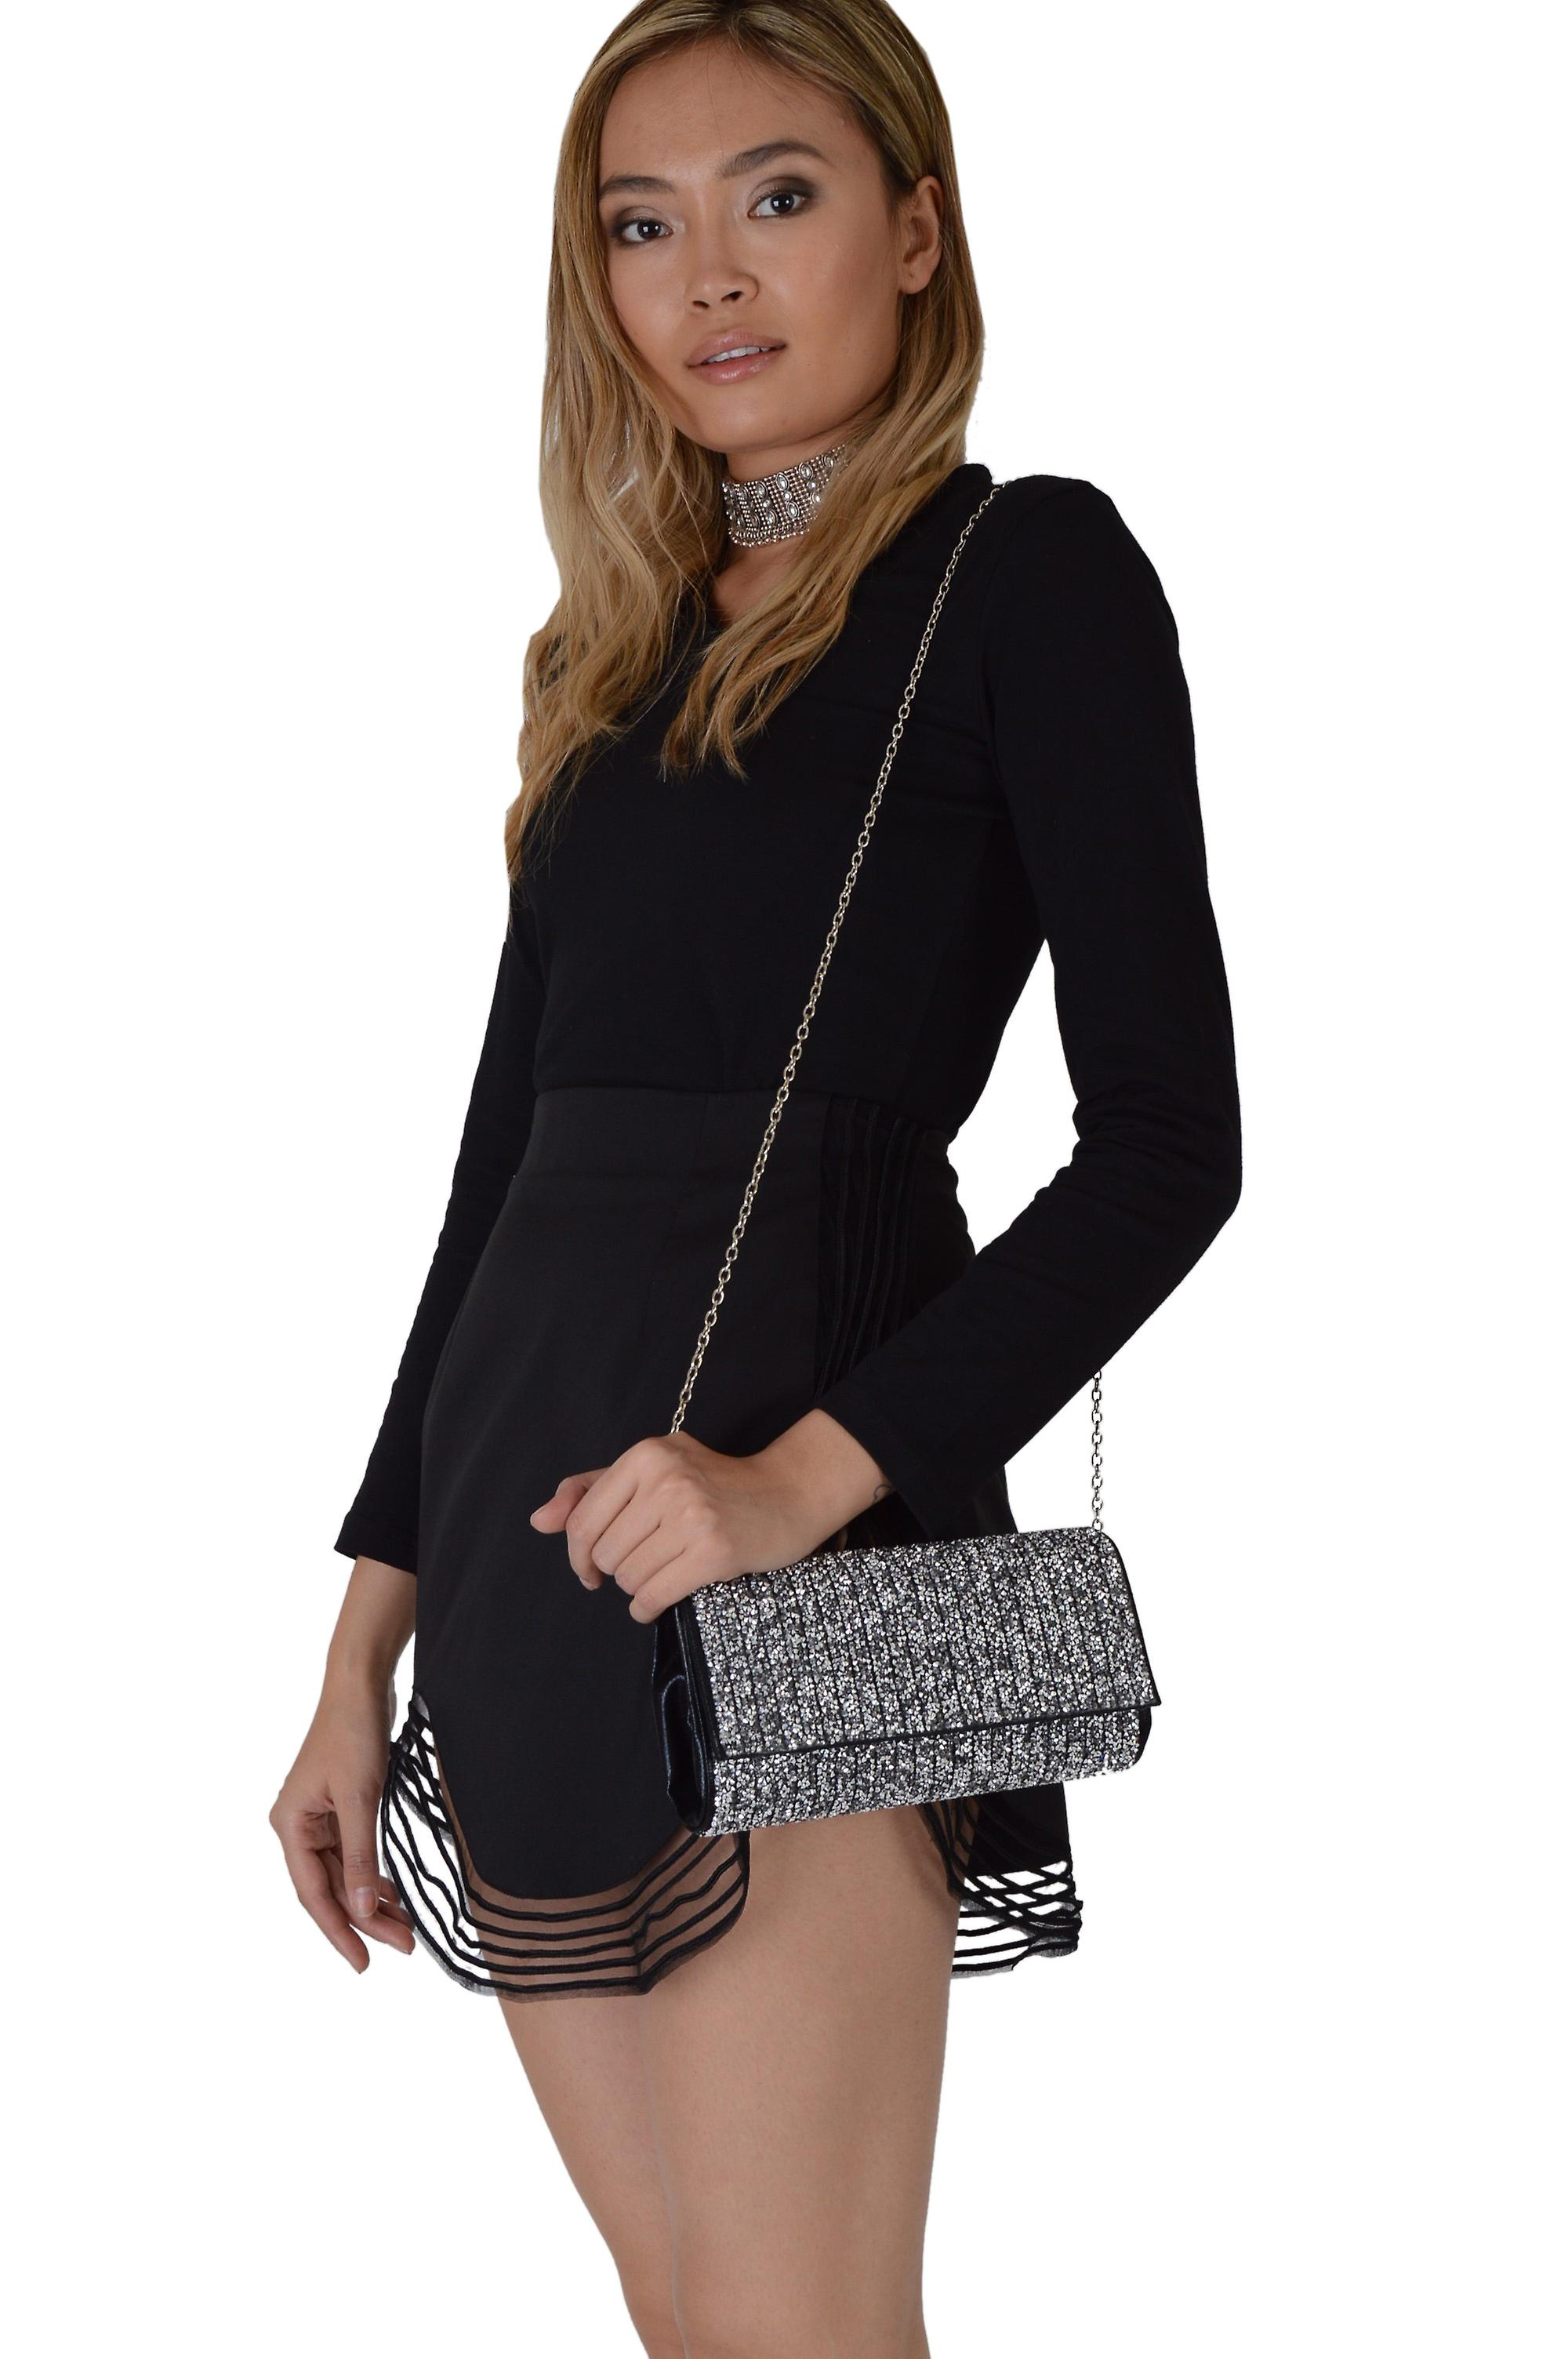 Lovemystyle Black Glitter Side Bag With Silver Metal Strap